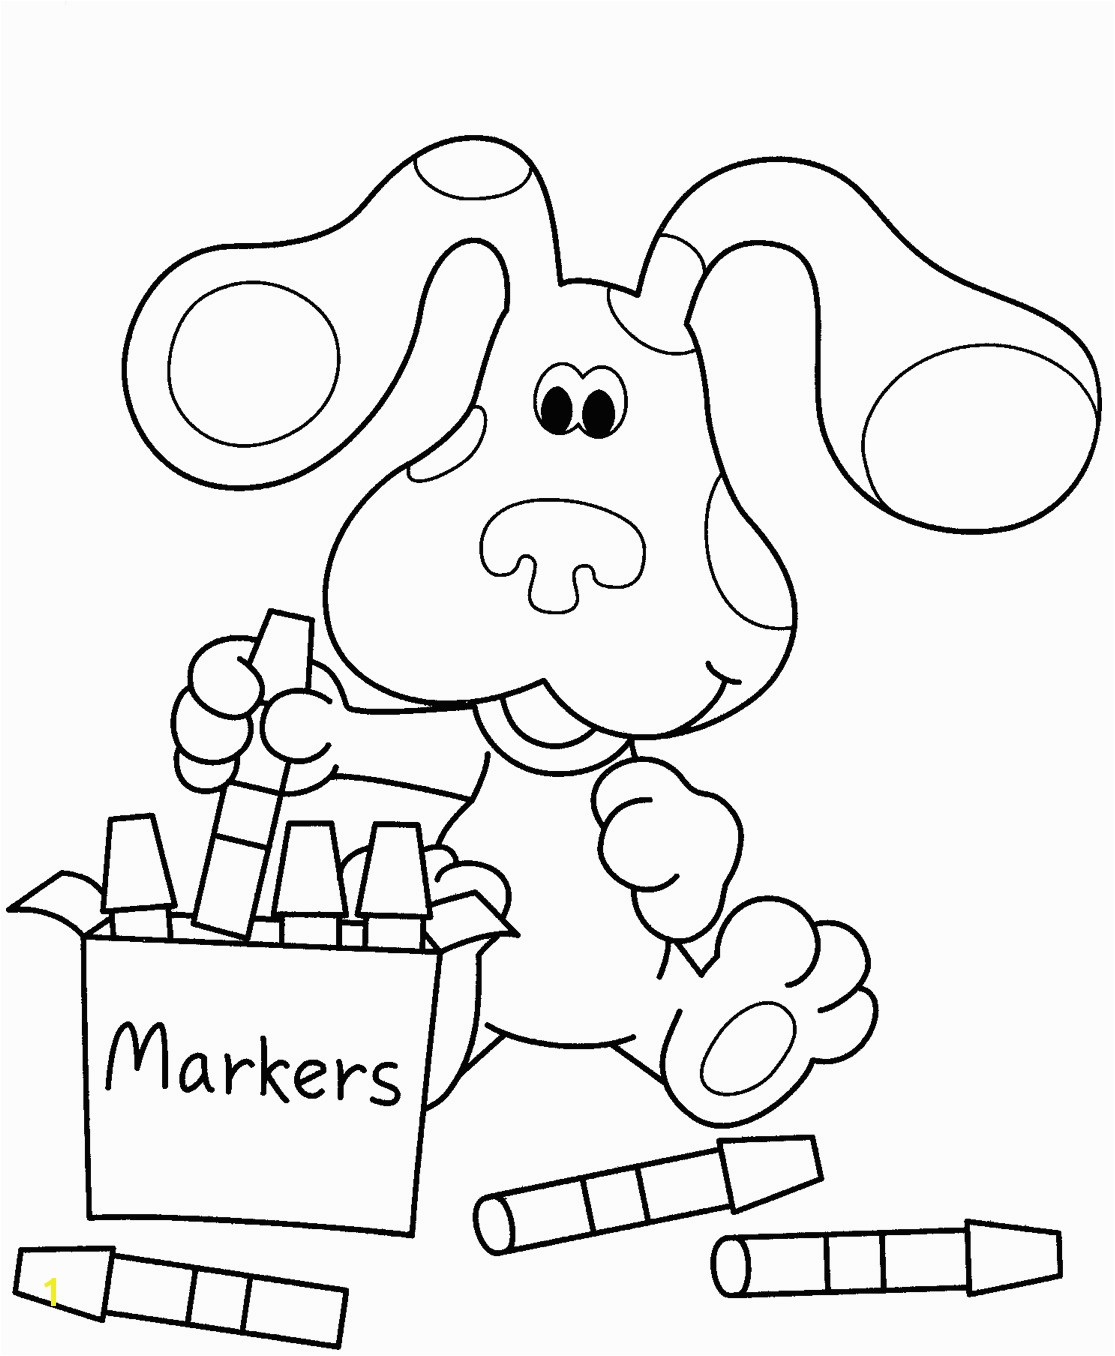 Christmas Coloring Books for Kids New Blues Clues Coloring Pages to Print Coloringstar Pics